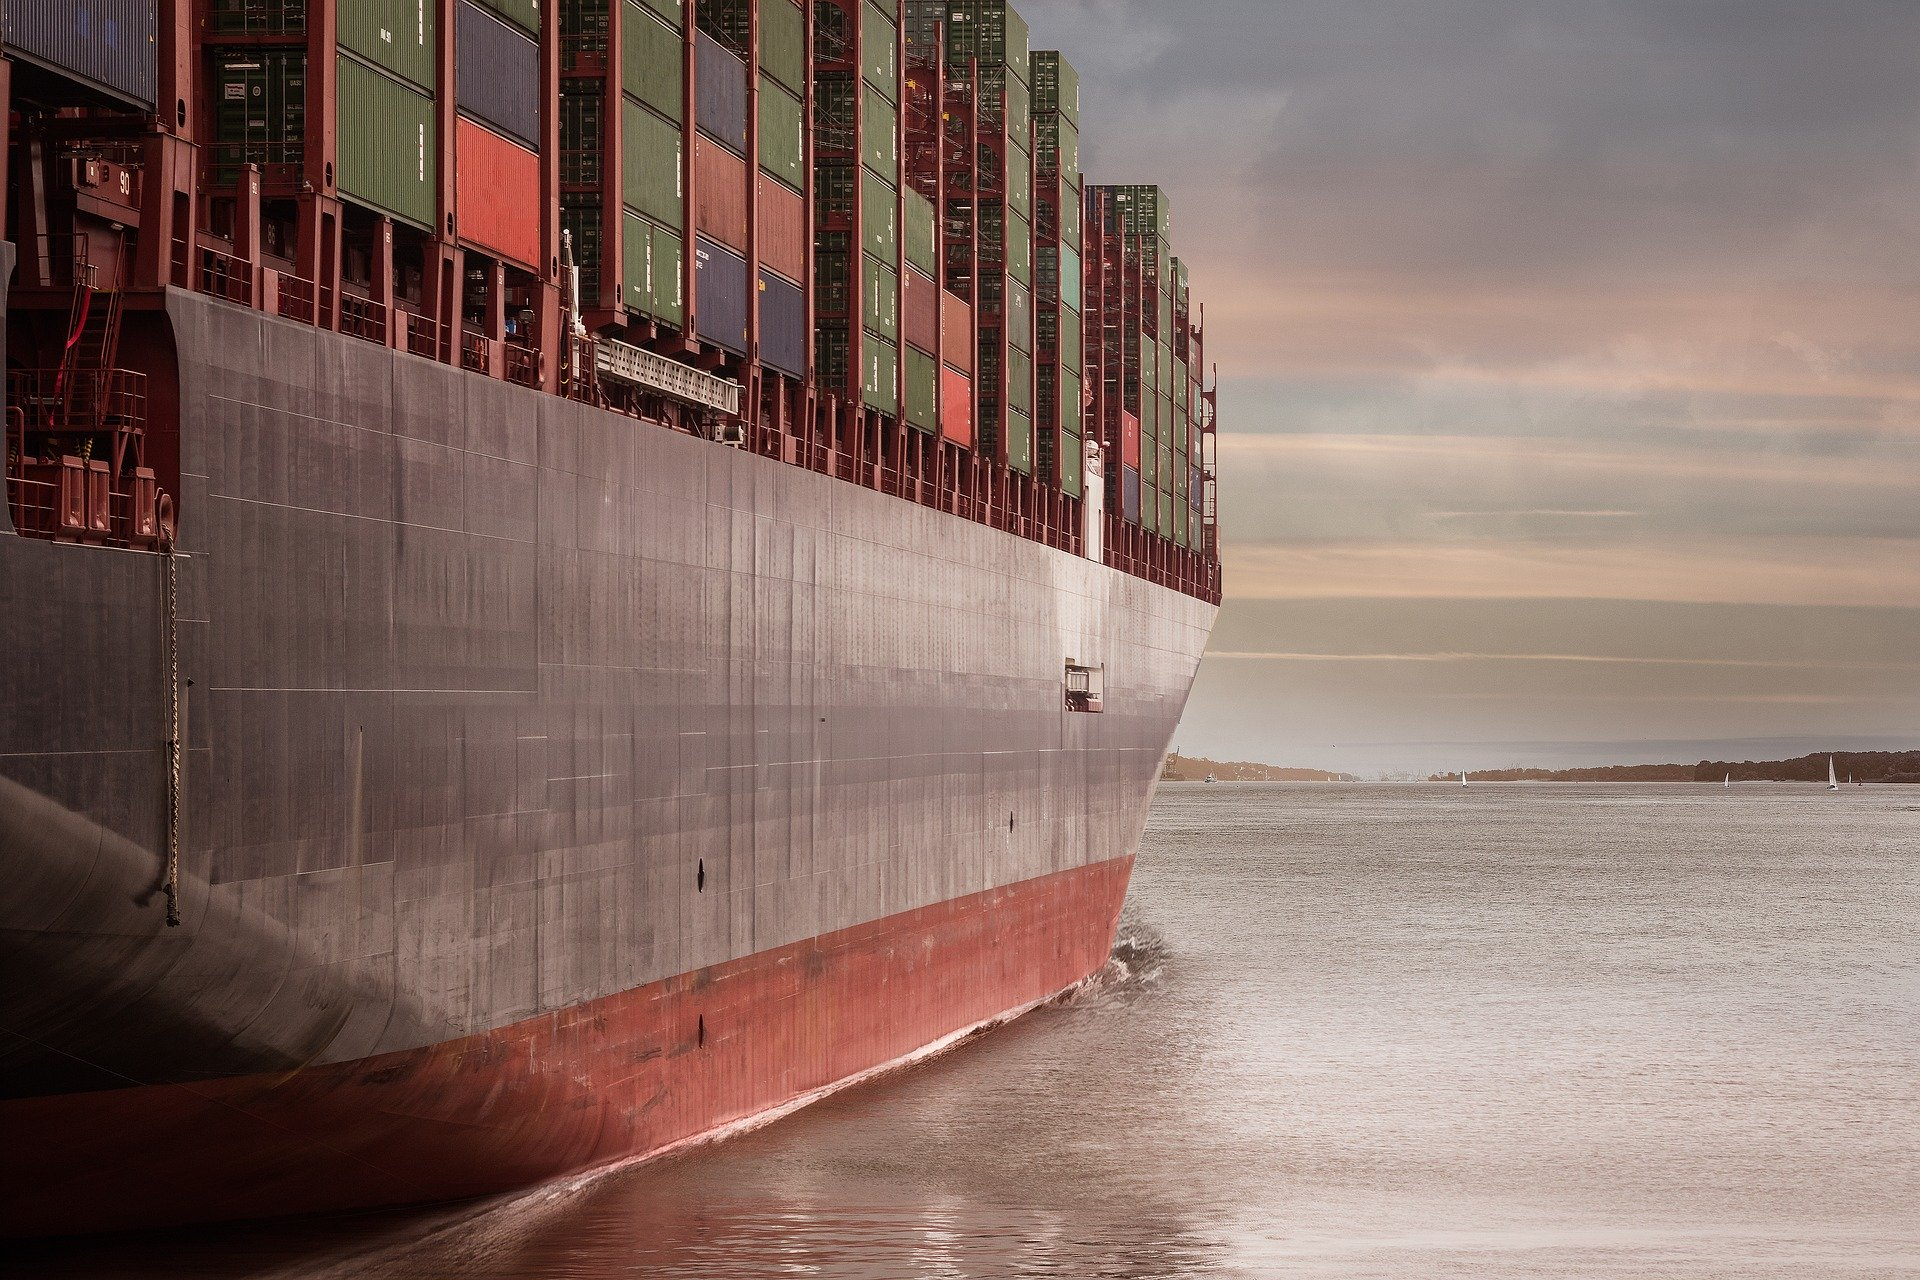 container-1638068_1920